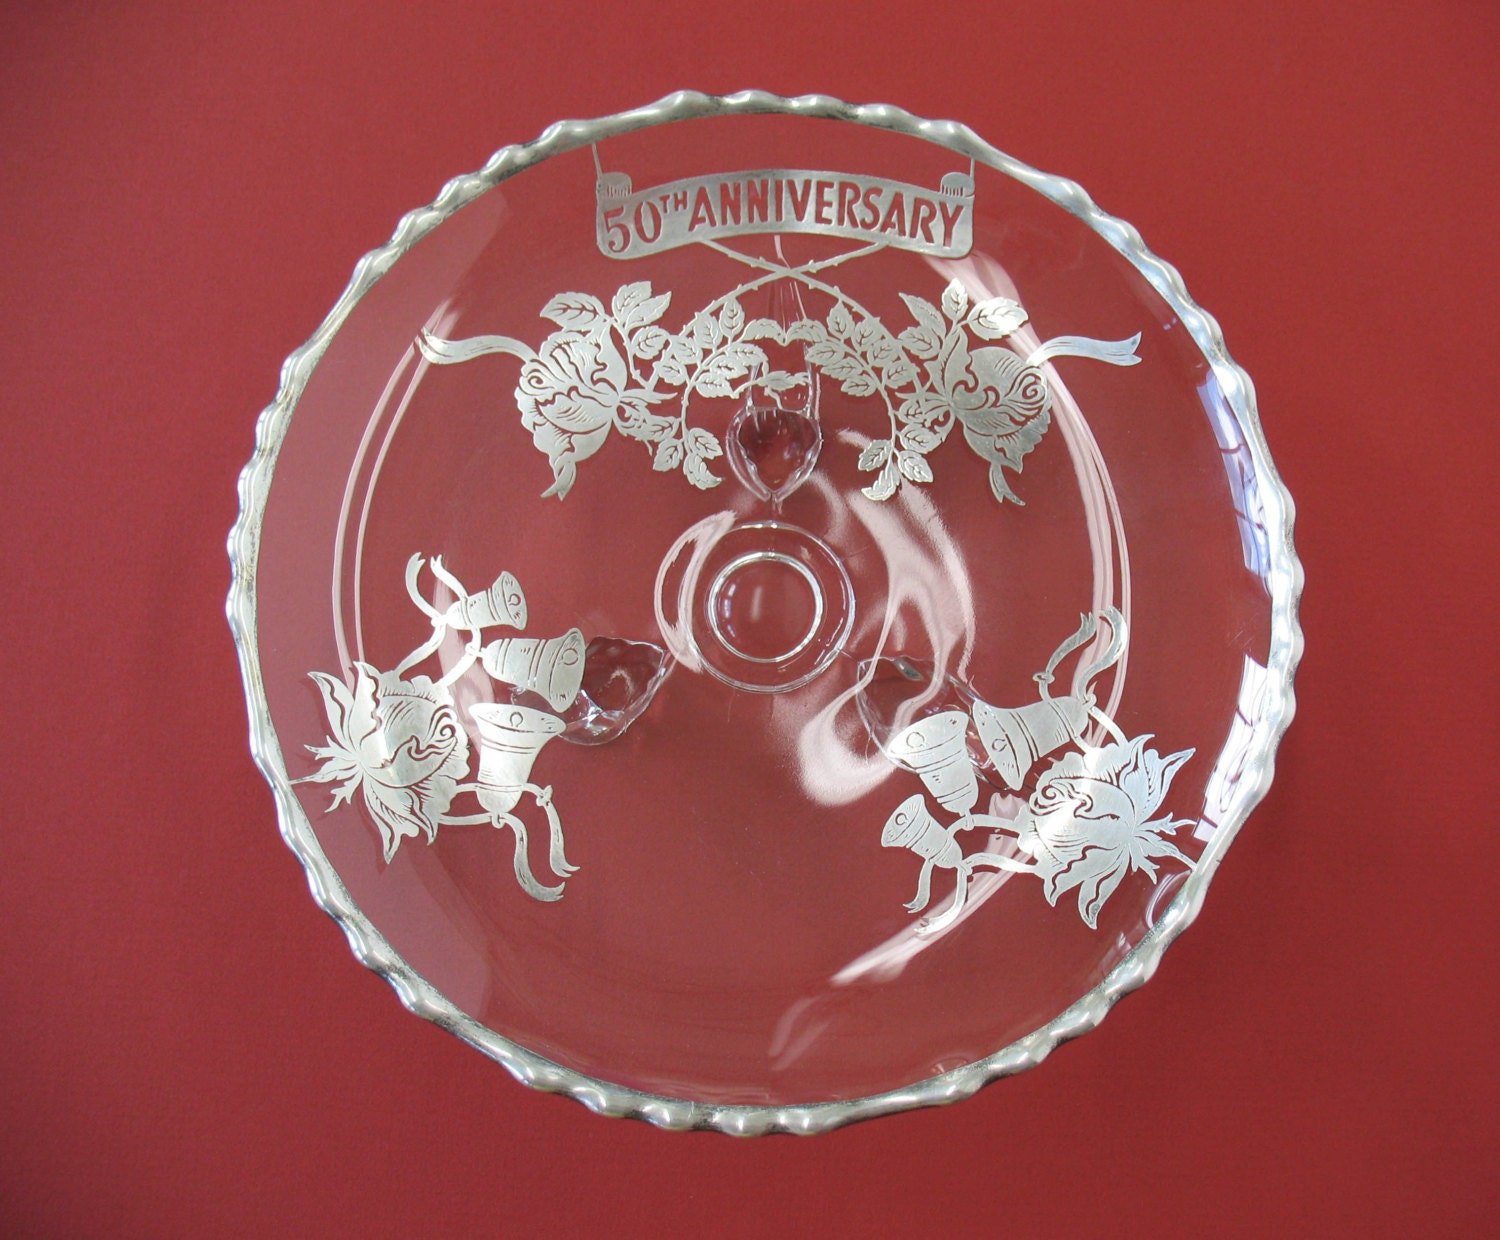 Gift For 50th Wedding Anniversary Traditional: Anniversary Gift 50th Wedding Anniversary Plate Silver Wedding